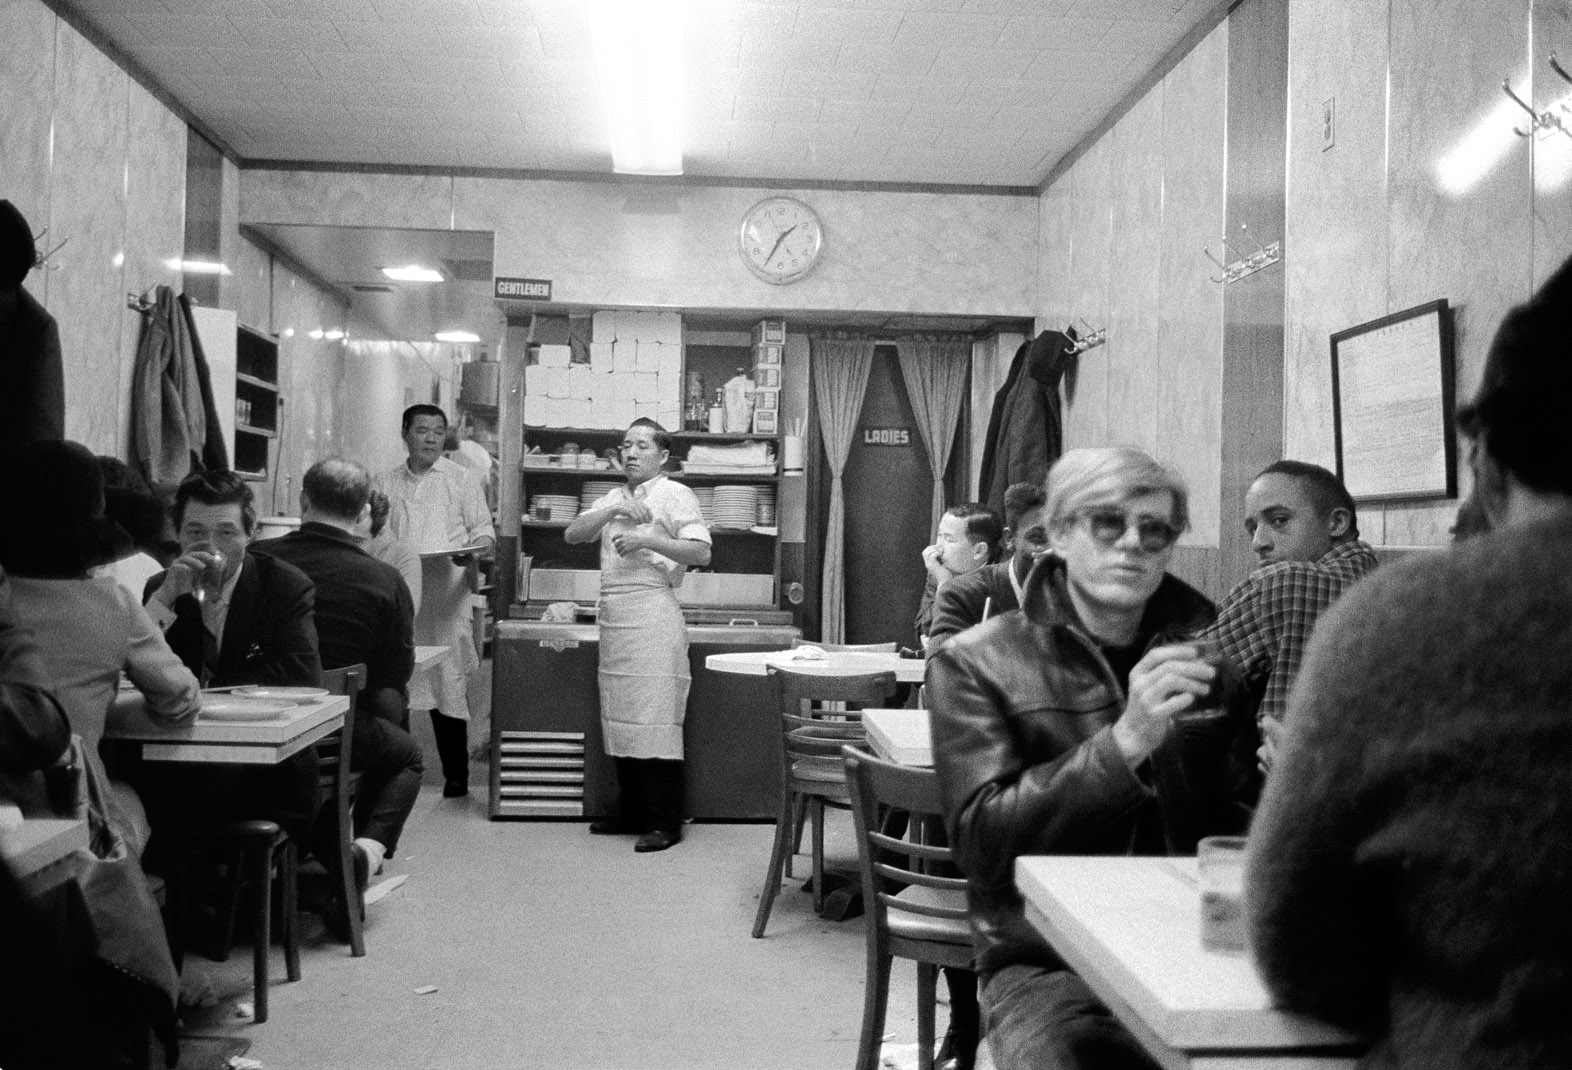 StephenShore-1-35am-ChinatownRestaurant-NYC1965-67